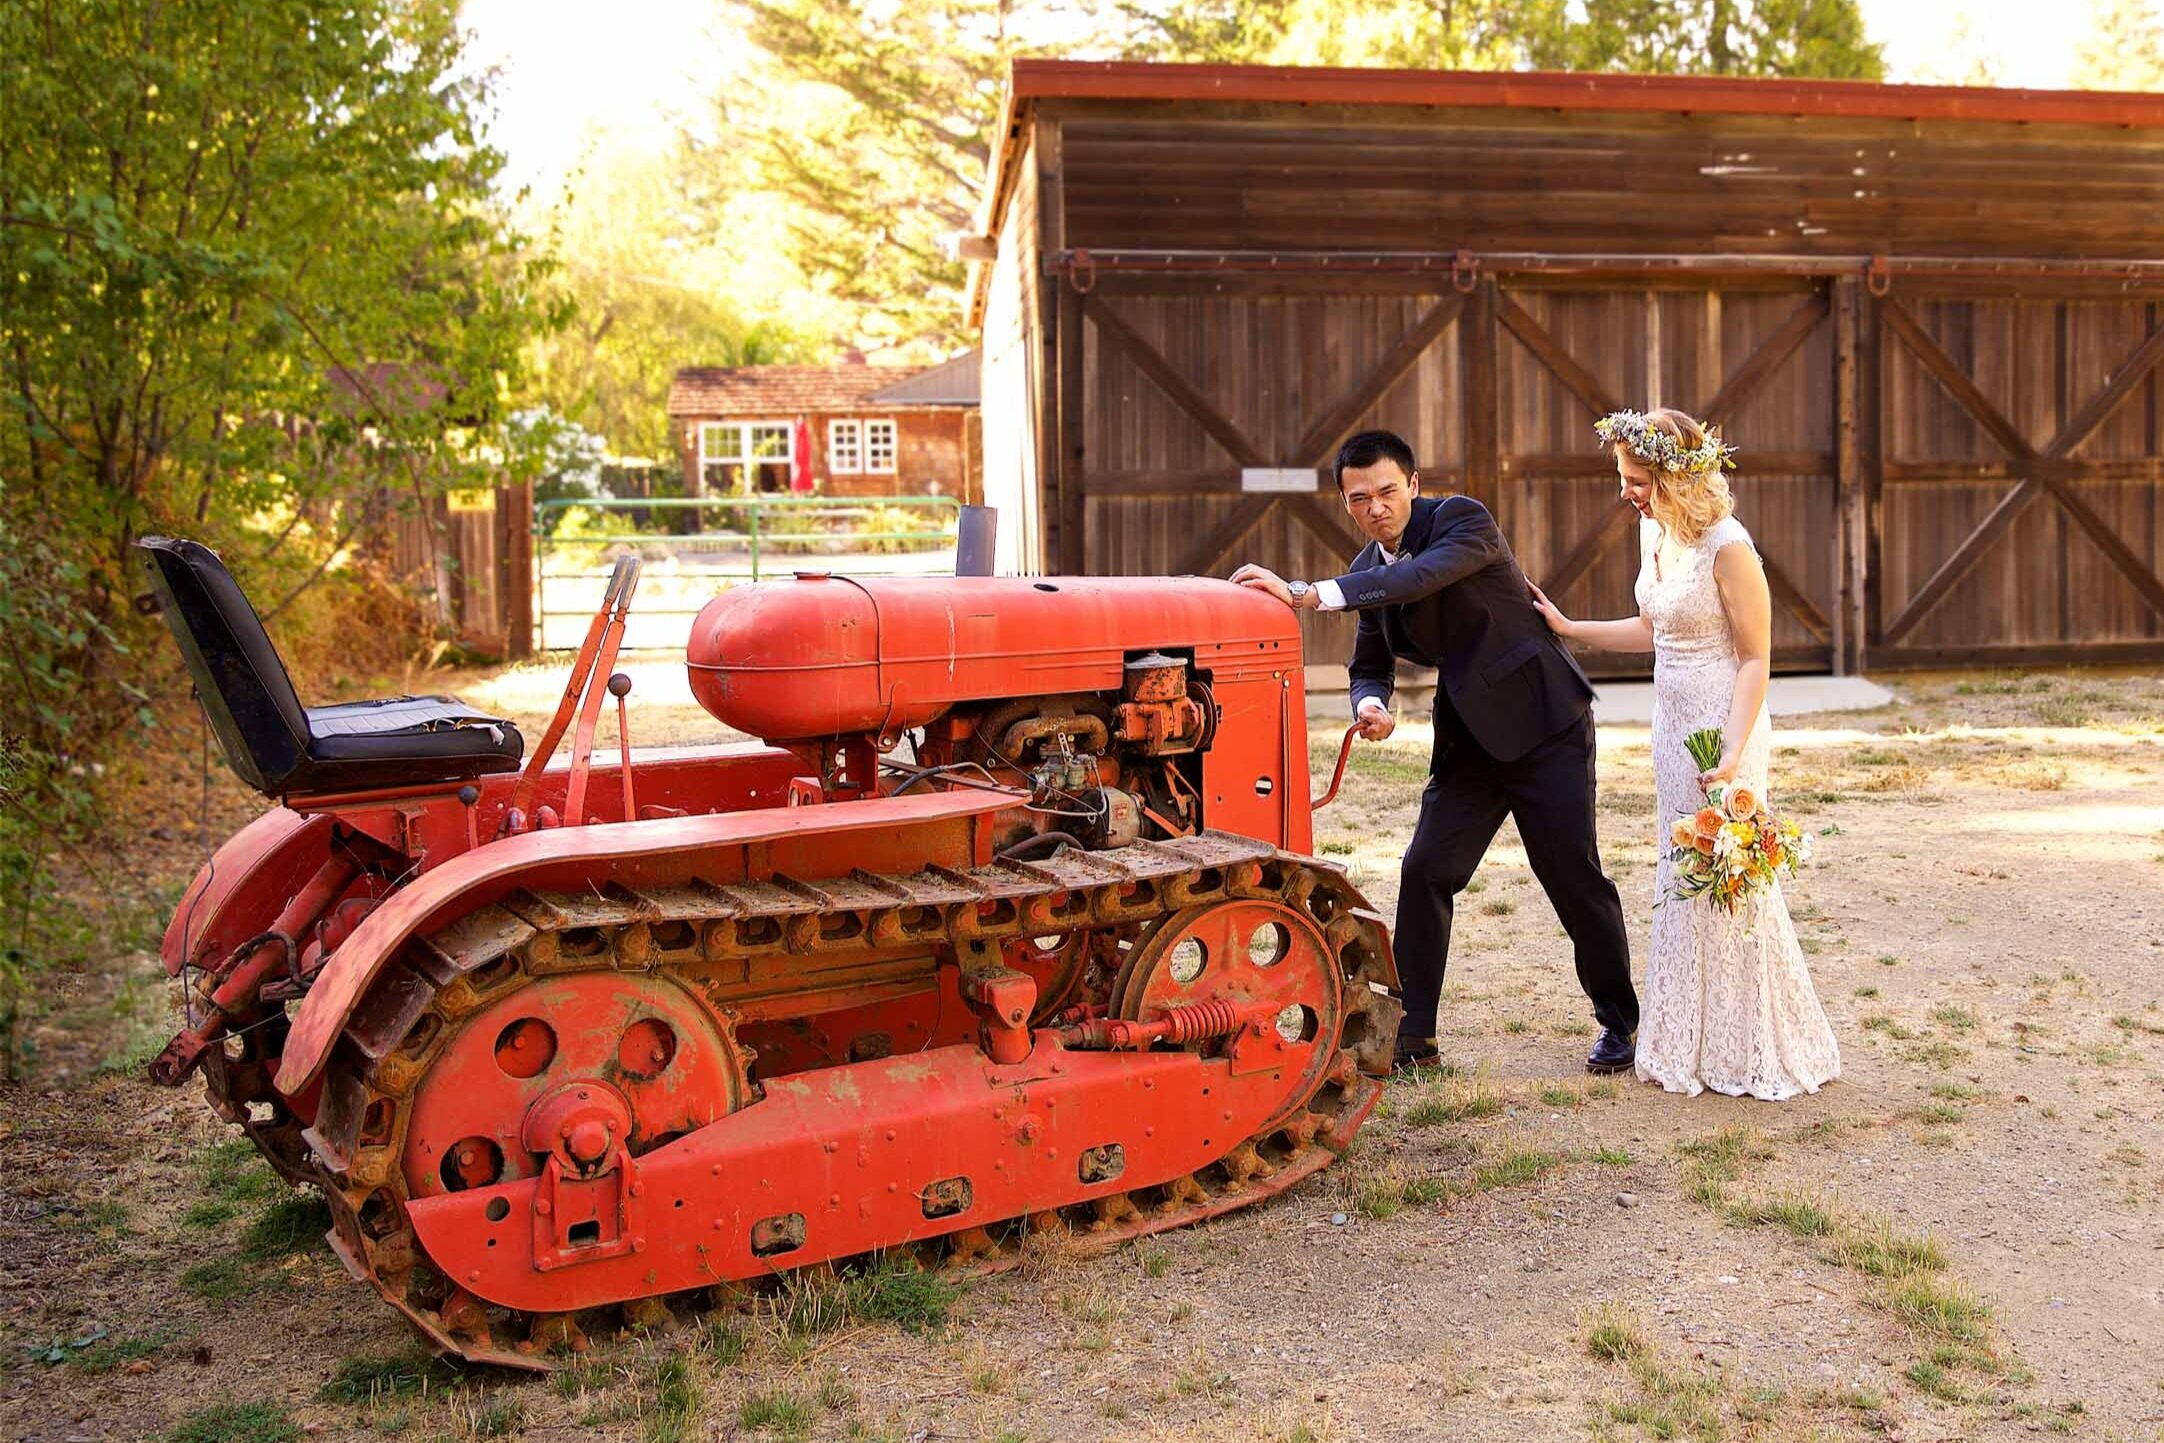 bride-and-groom-standing-next-to-red-tractor-during-their-california-ranch-wedding.jpg